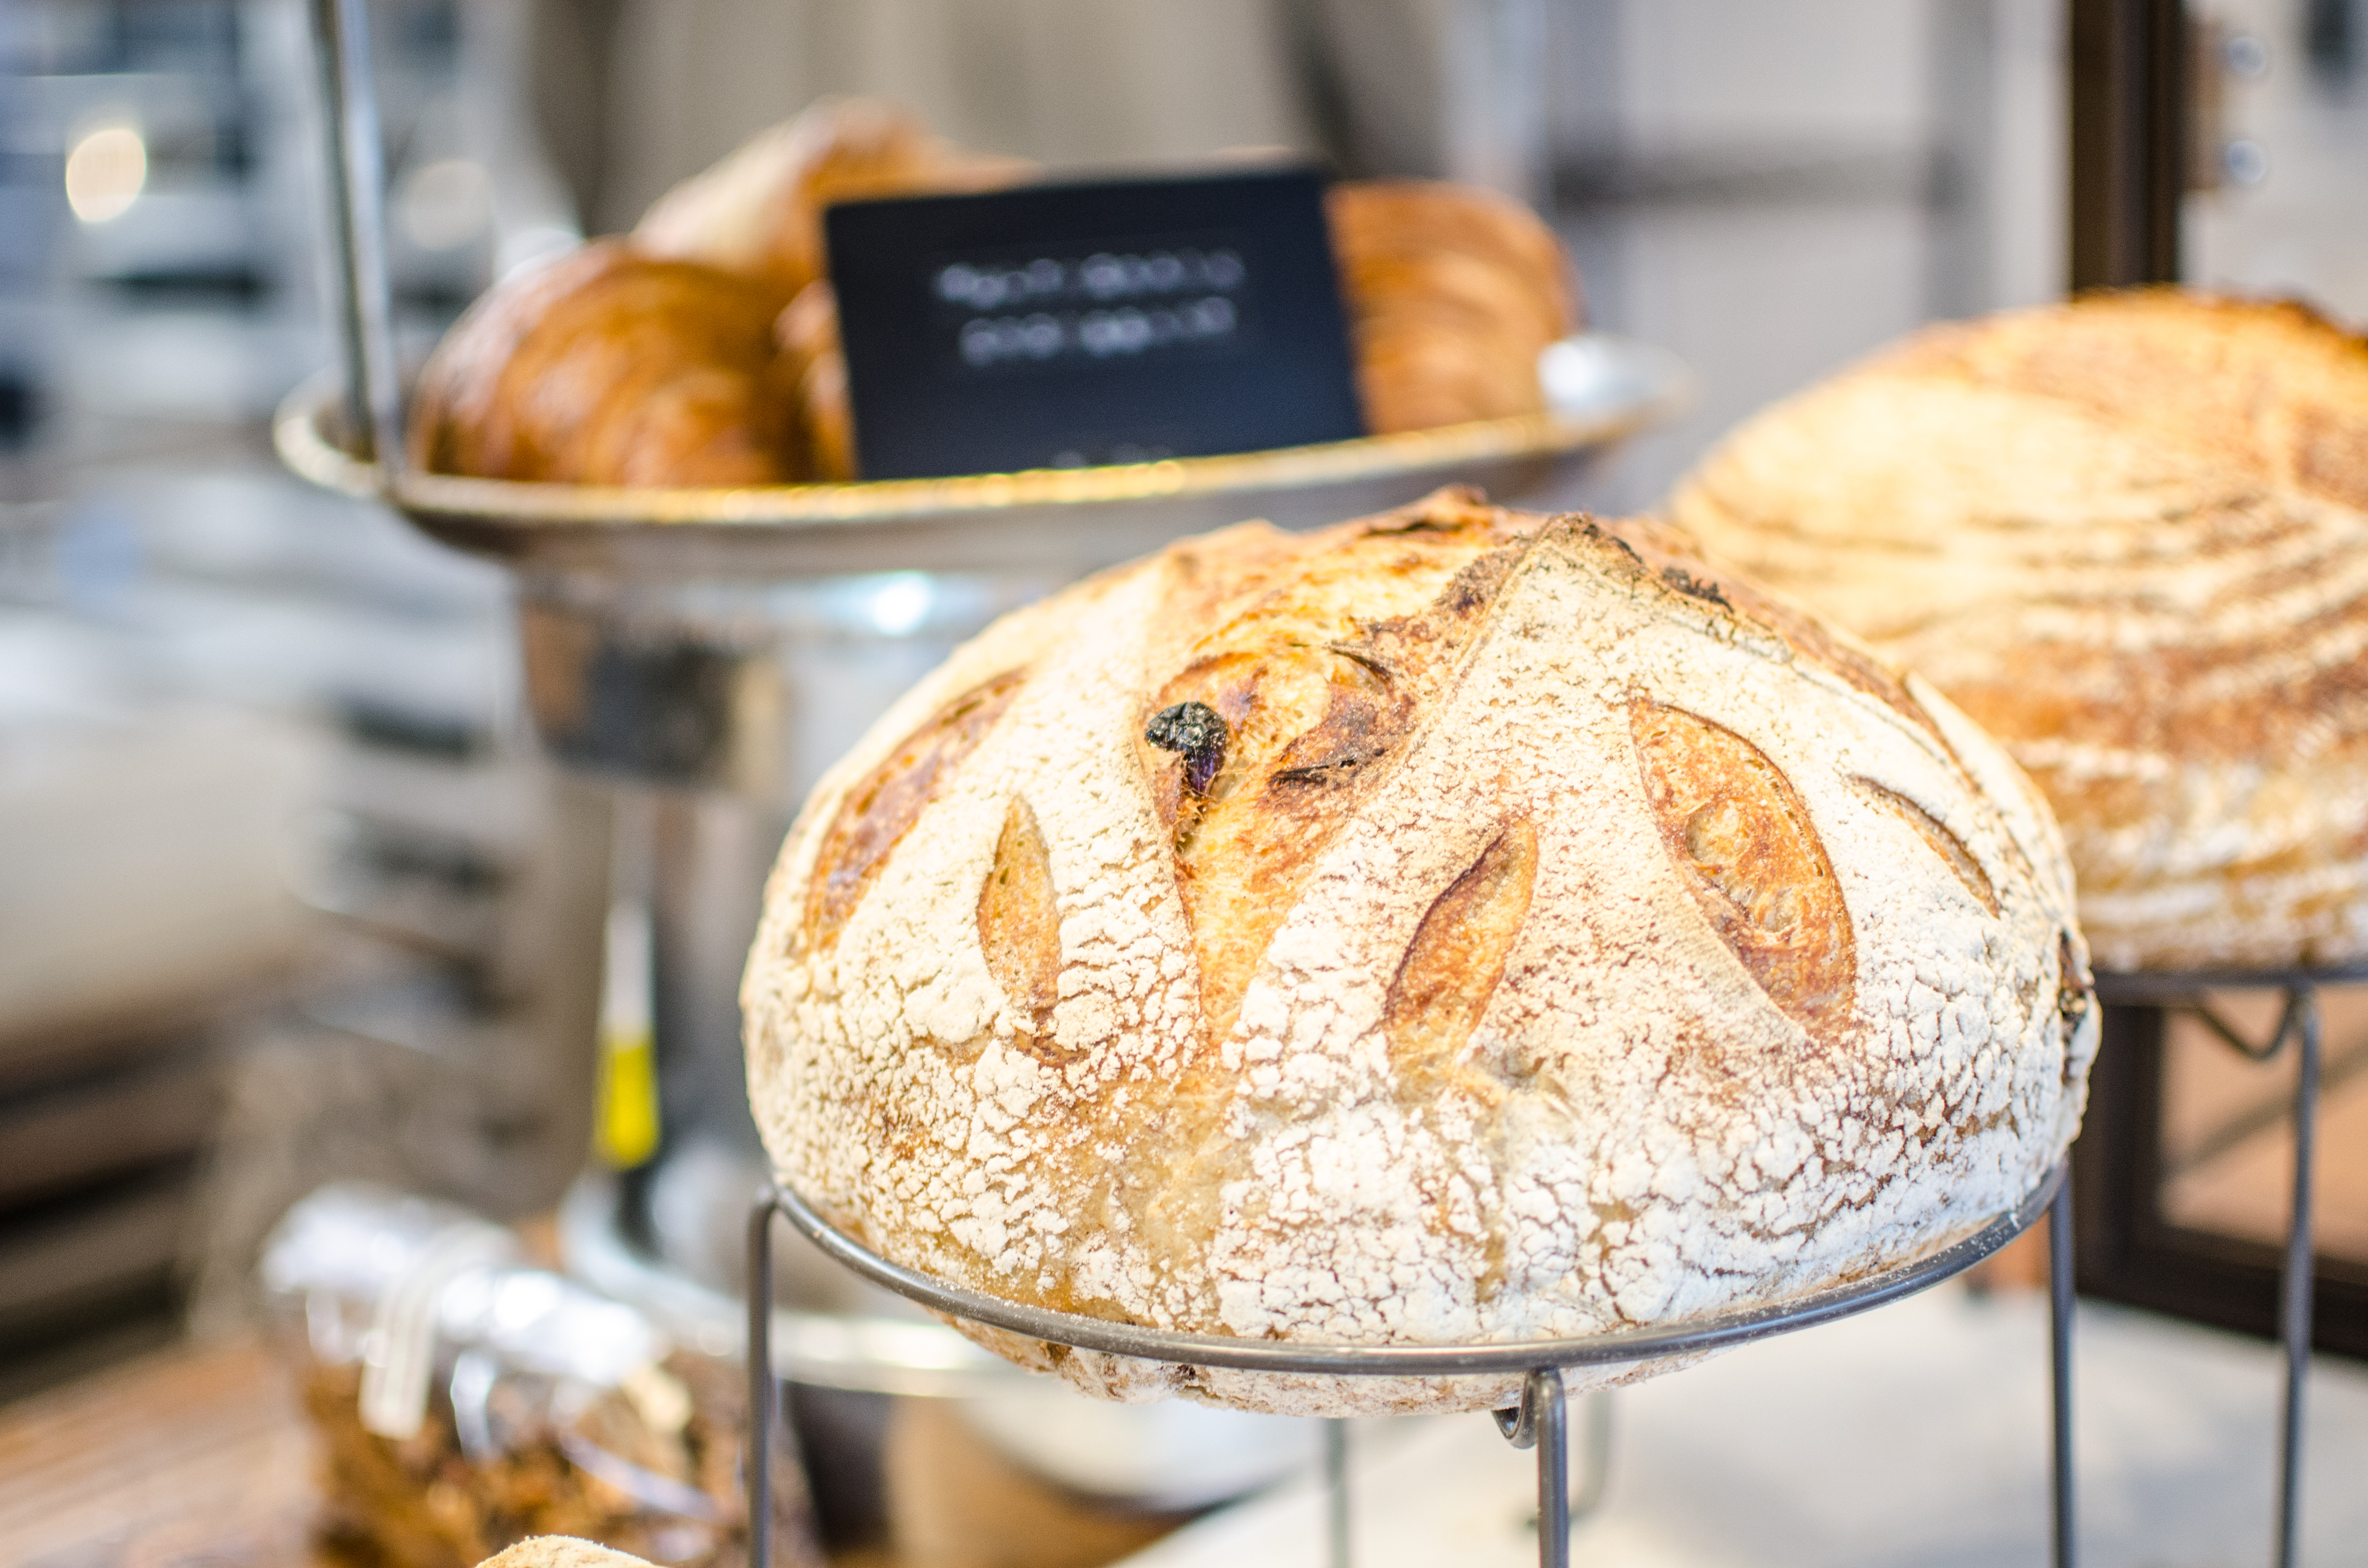 Sourdough loaves sit on display in a bakery, with croissants visible in the background